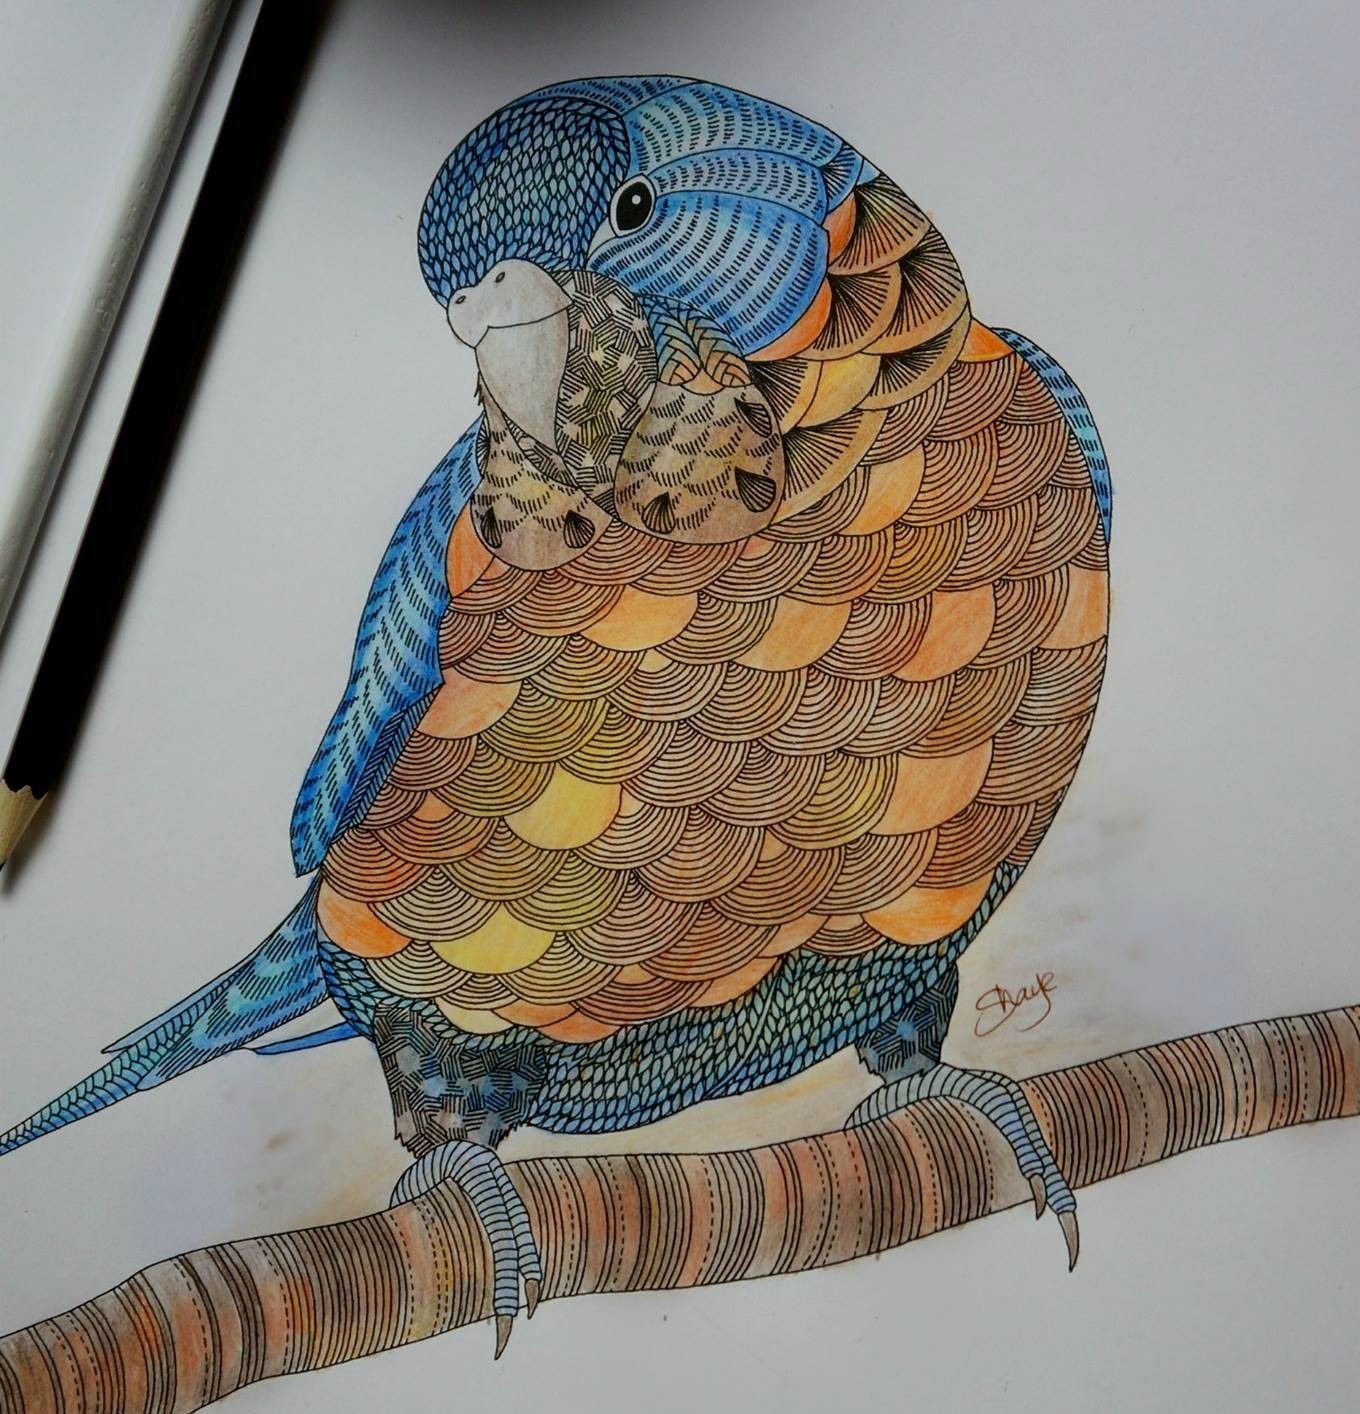 Millie Marottas Animal Kingdom Bird Colouring With Vaseline Blending